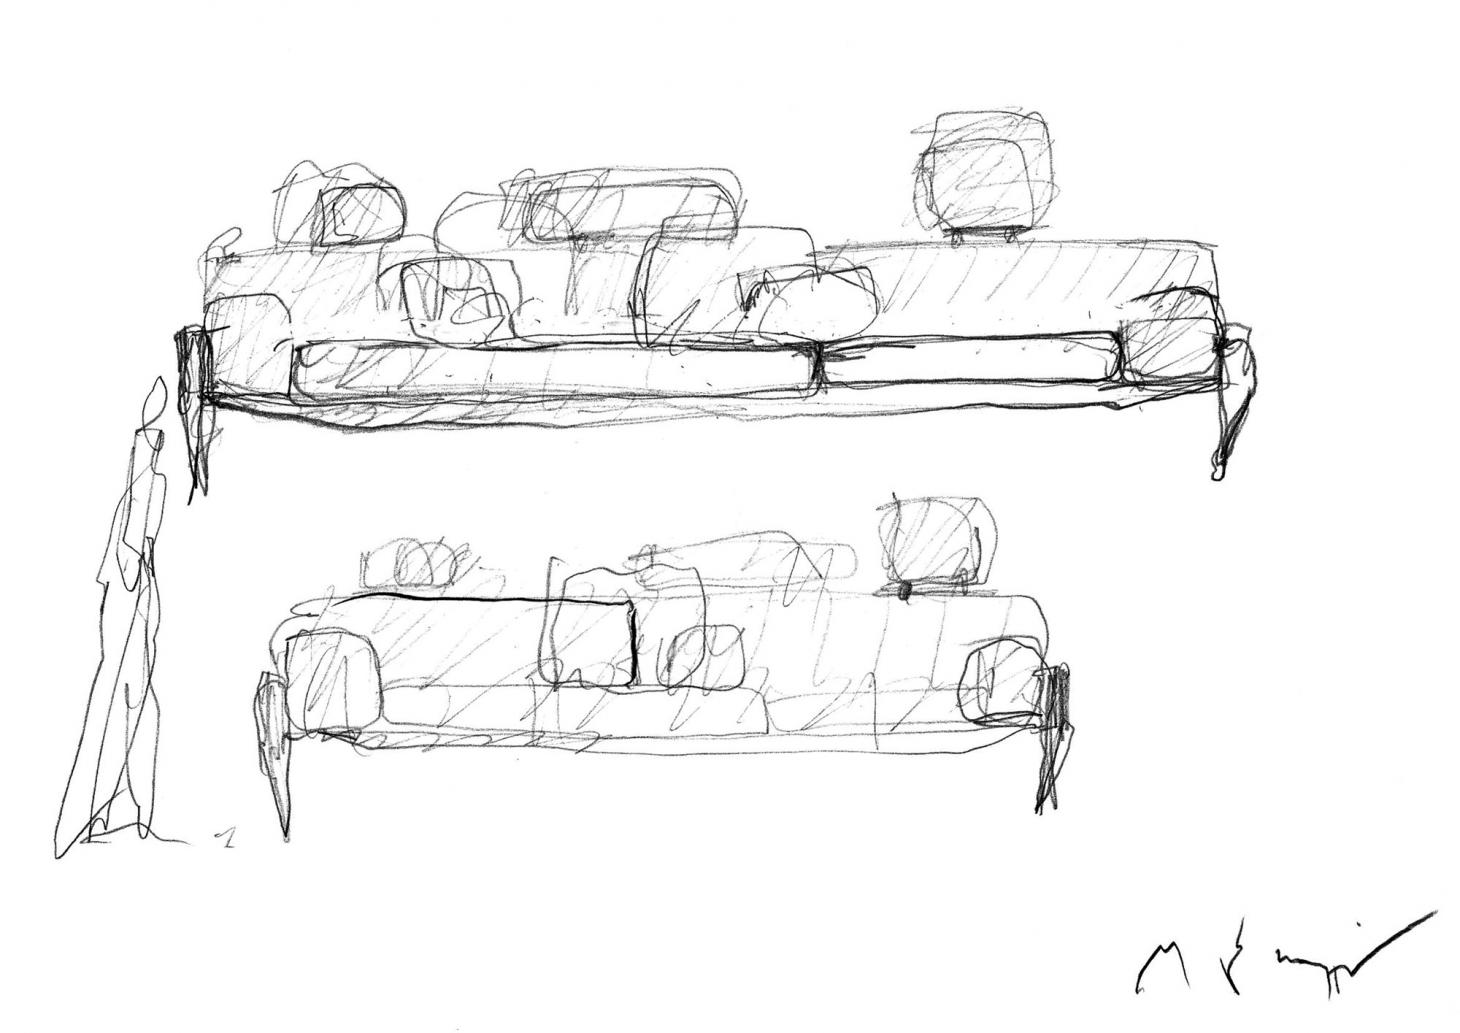 A black and white pencil sketch by Michele De Lucchi representing his Float sofa for Stellar Works in two different compositions